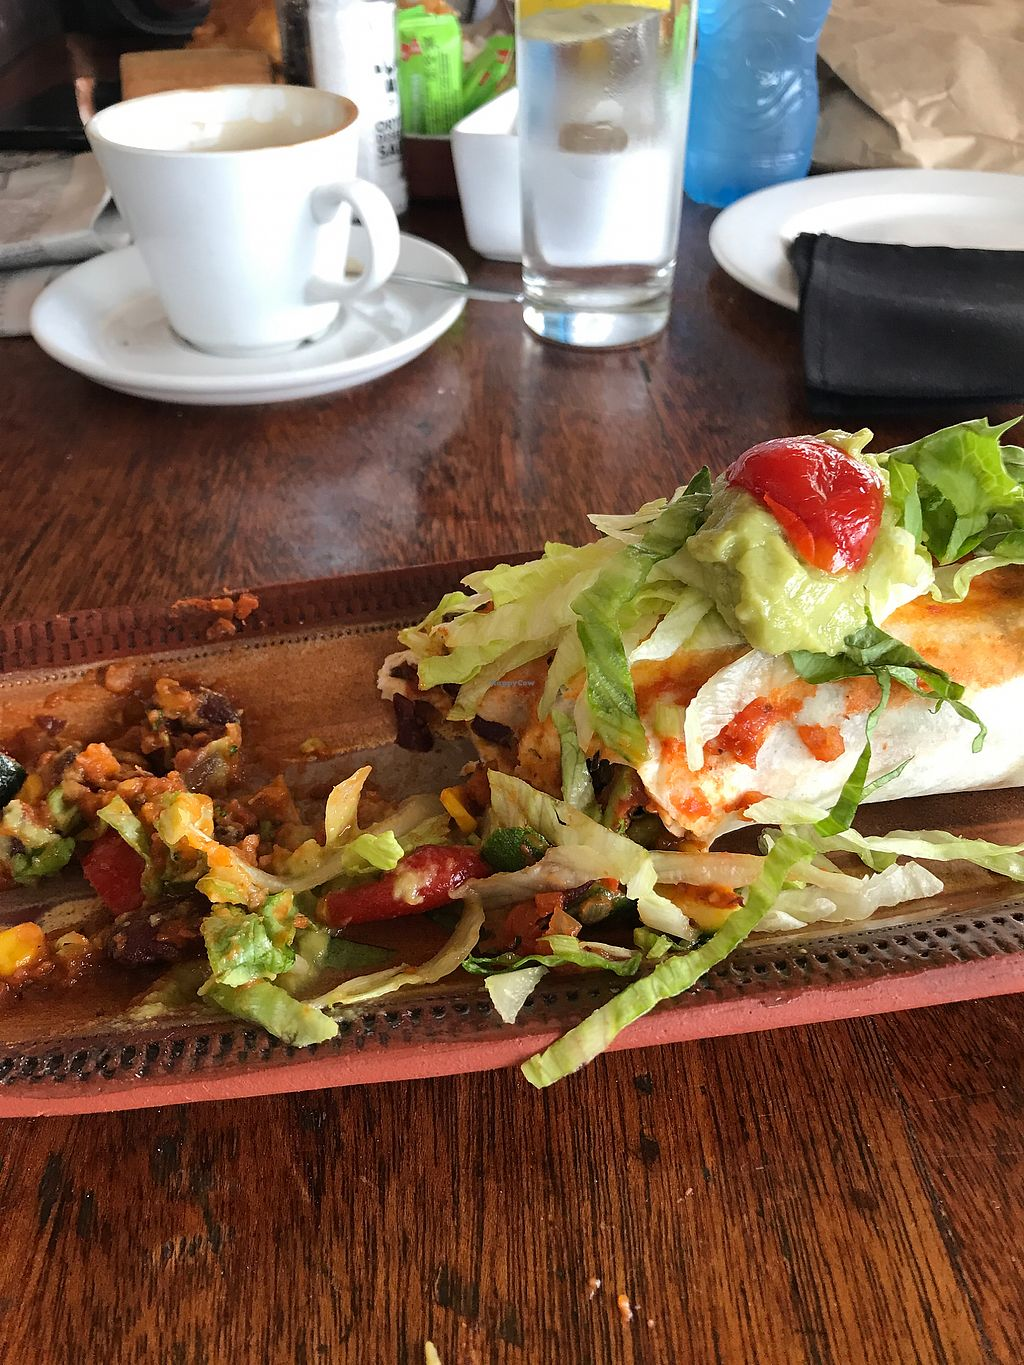 """Photo of In Food Bakery & Deli Restaurant  by <a href=""""/members/profile/Debbie23"""">Debbie23</a> <br/>Half eaten vegan enchilada <br/> October 24, 2017  - <a href='/contact/abuse/image/94062/318456'>Report</a>"""